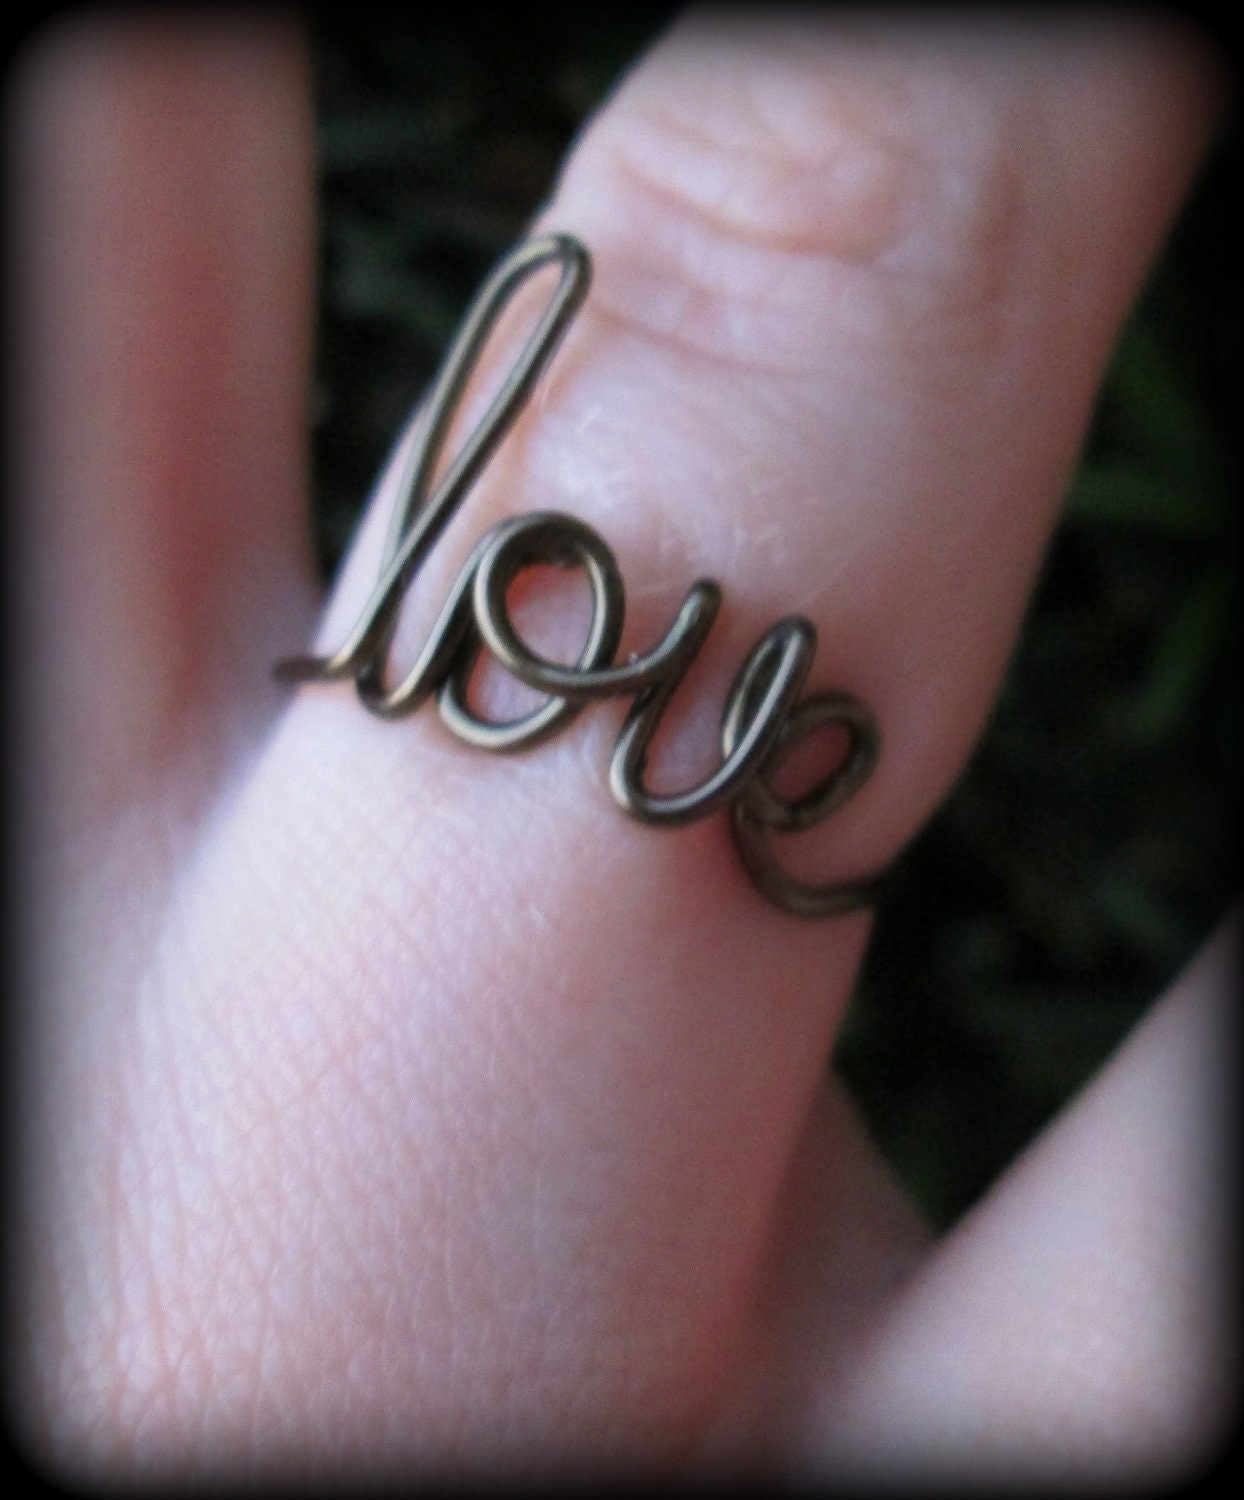 love jewelry.wire love rings.custom word rings.gift box included.weddings.bridemaids gifts.fast shipping.